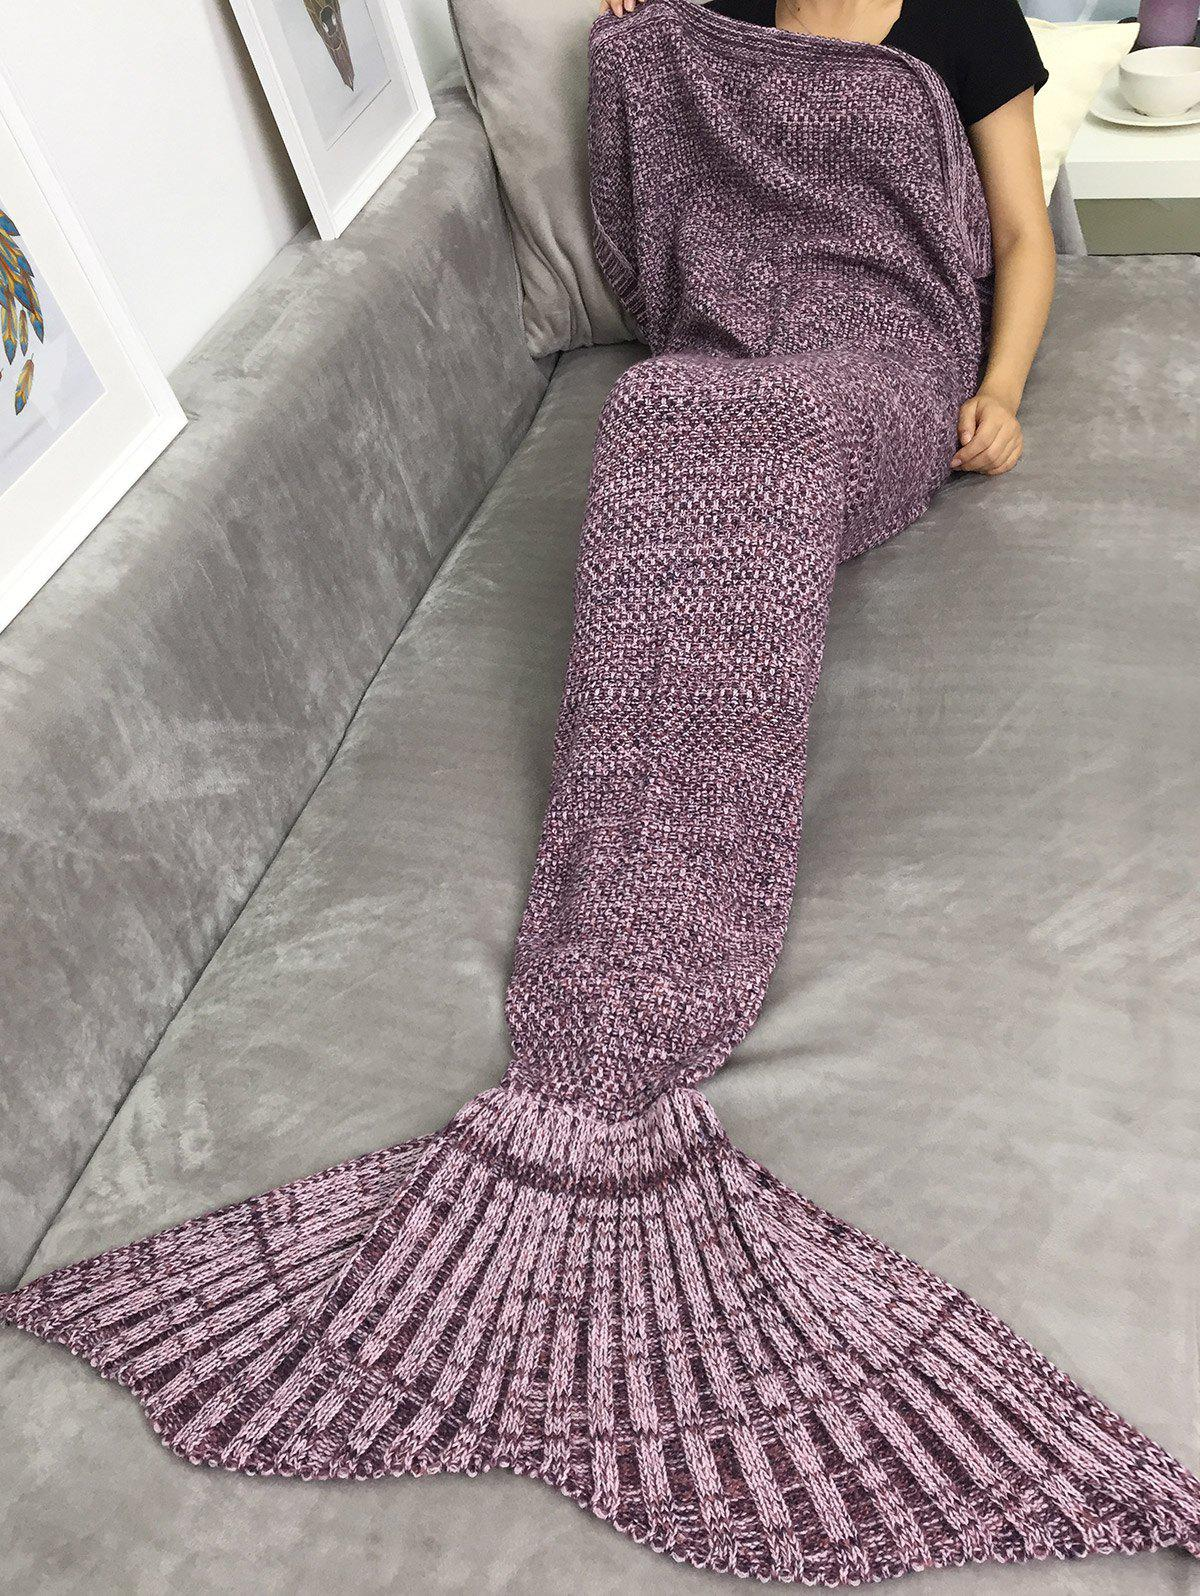 Handmade Knitting Sleeping Bag Sofa Wrap Mermaid Tail Blanket